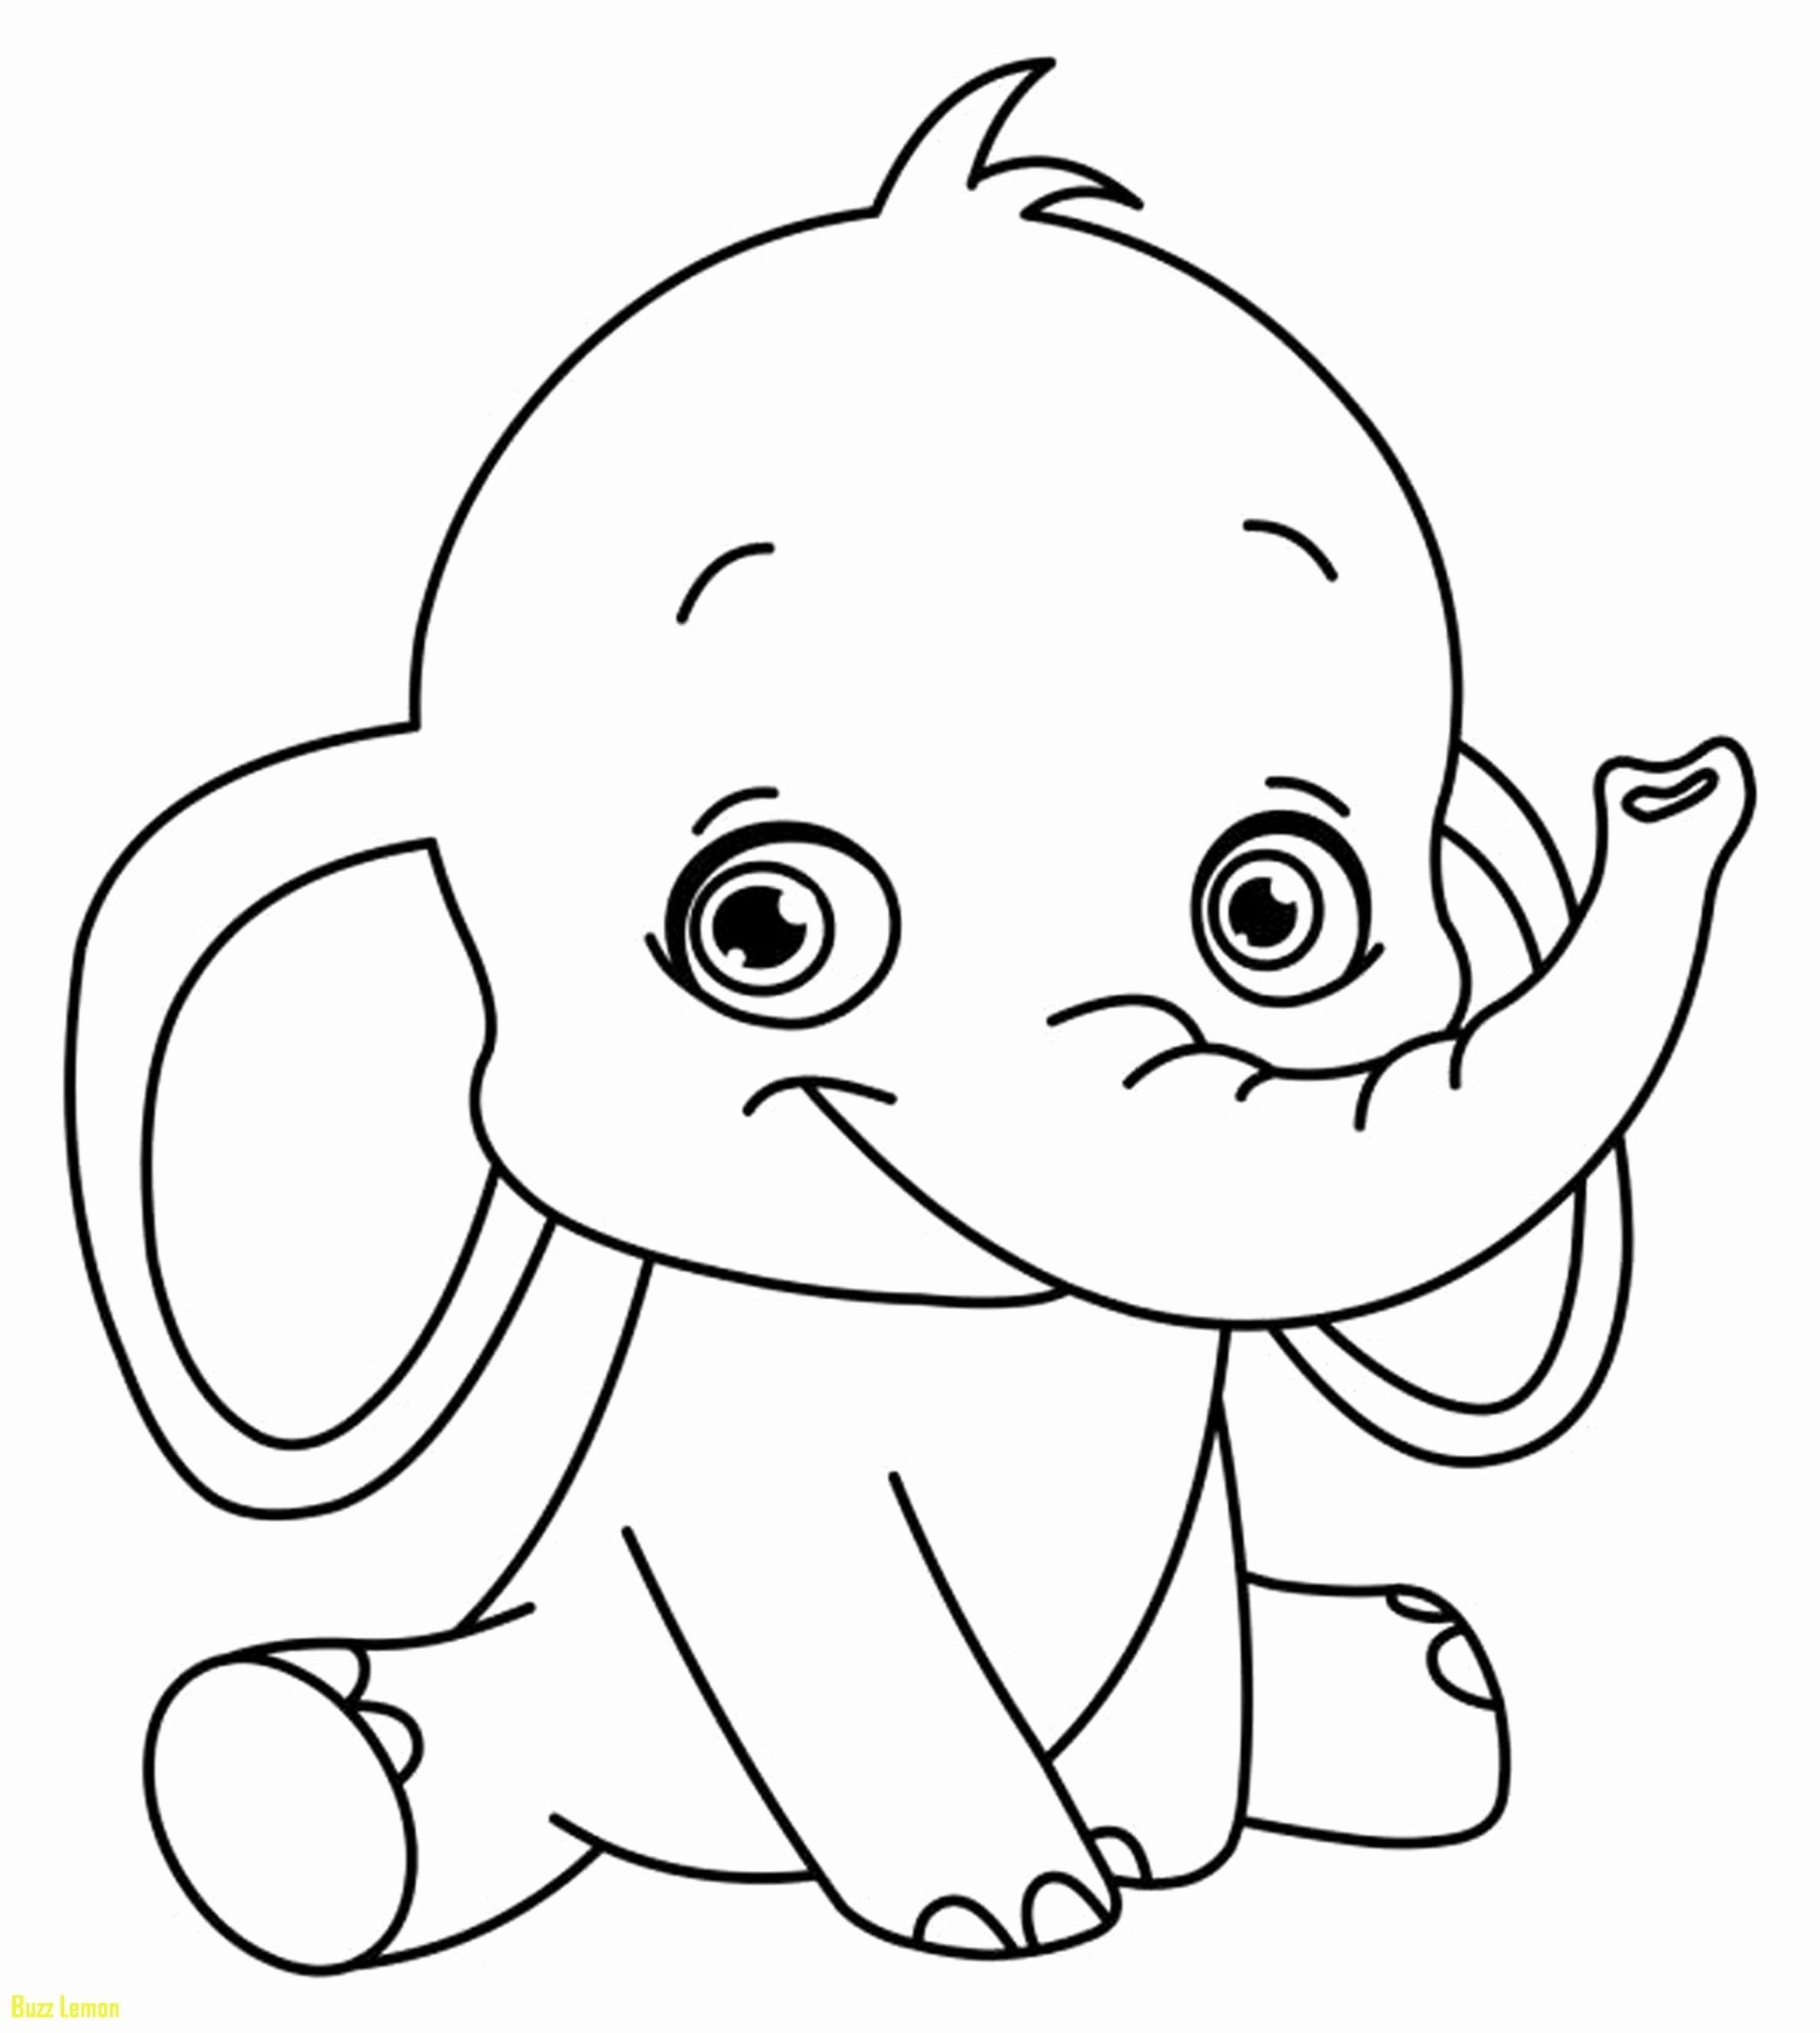 Coloring Books For Kids Beautiful Coloring Coloring Amazing Printable Book For Kids Im In 2020 Elephant Coloring Page Easy Coloring Pages Kids Printable Coloring Pages